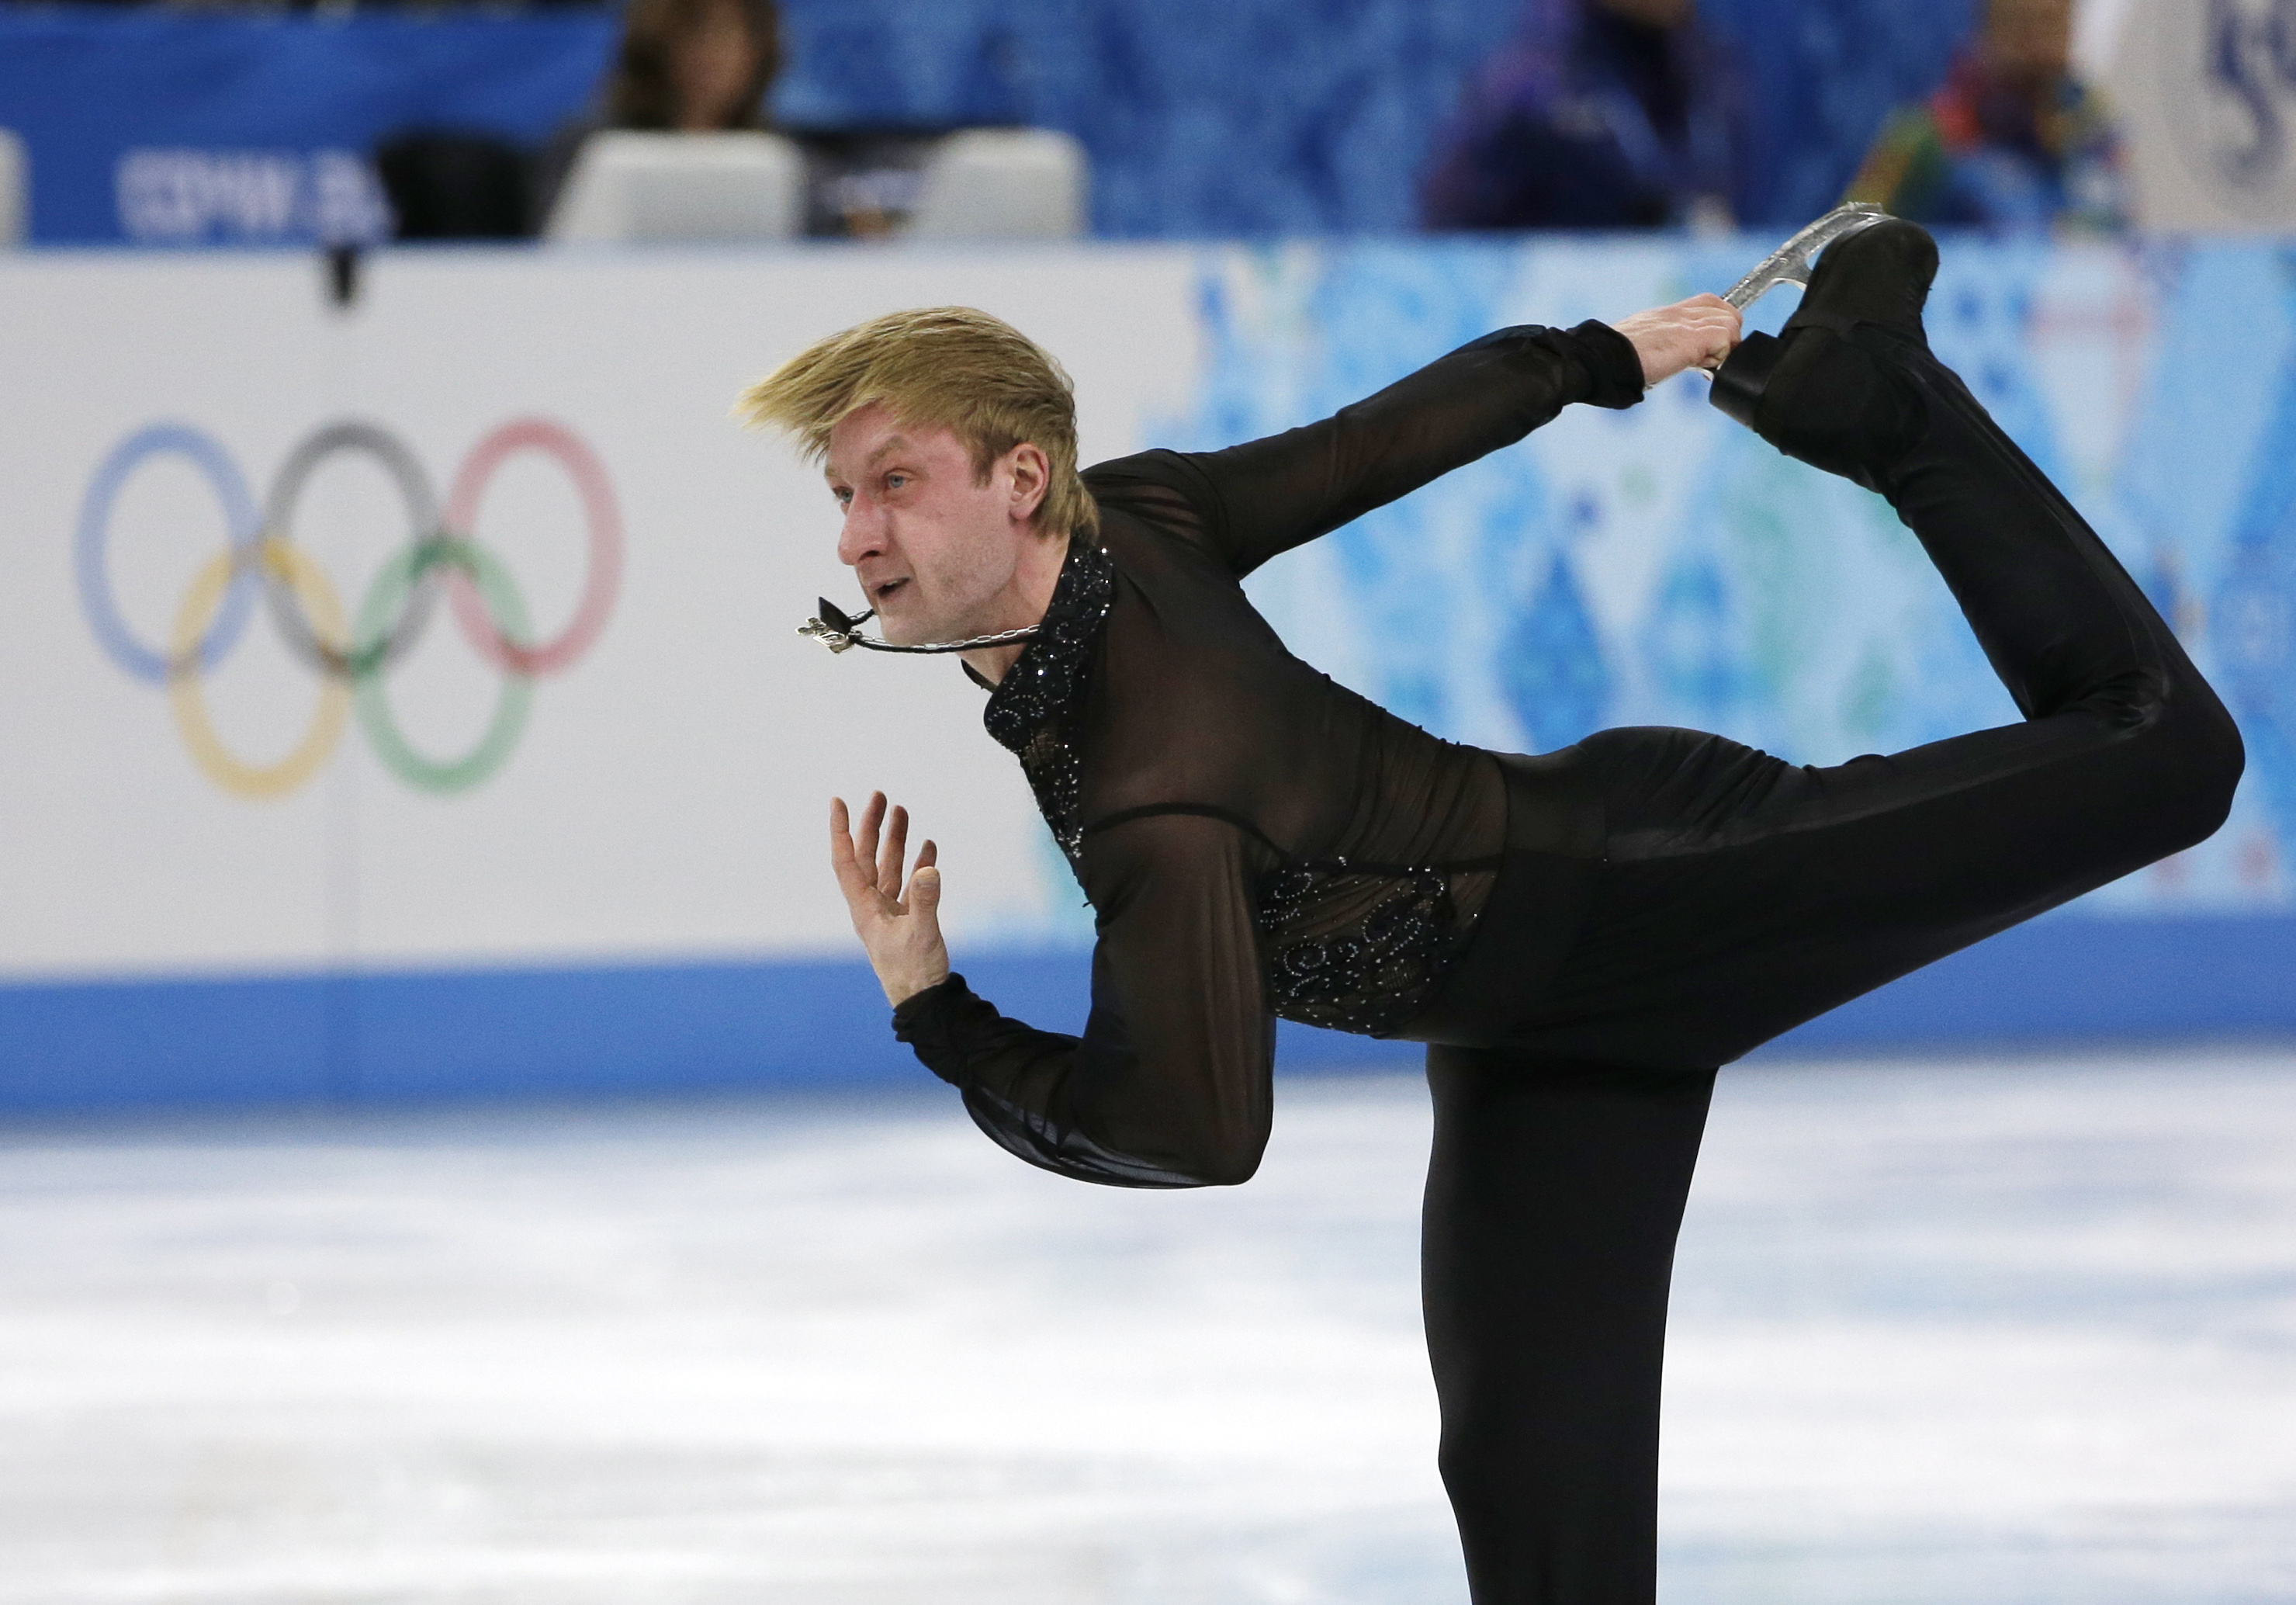 Evgeni Plushenko of Russia competes in the men's team free skate figure skating competition at the Iceberg Skating Palace during the 2014 Winter Olympics, Sunday, Feb. 9, 2014, in Sochi, Russia. (AP Photo/David J. Phillip )